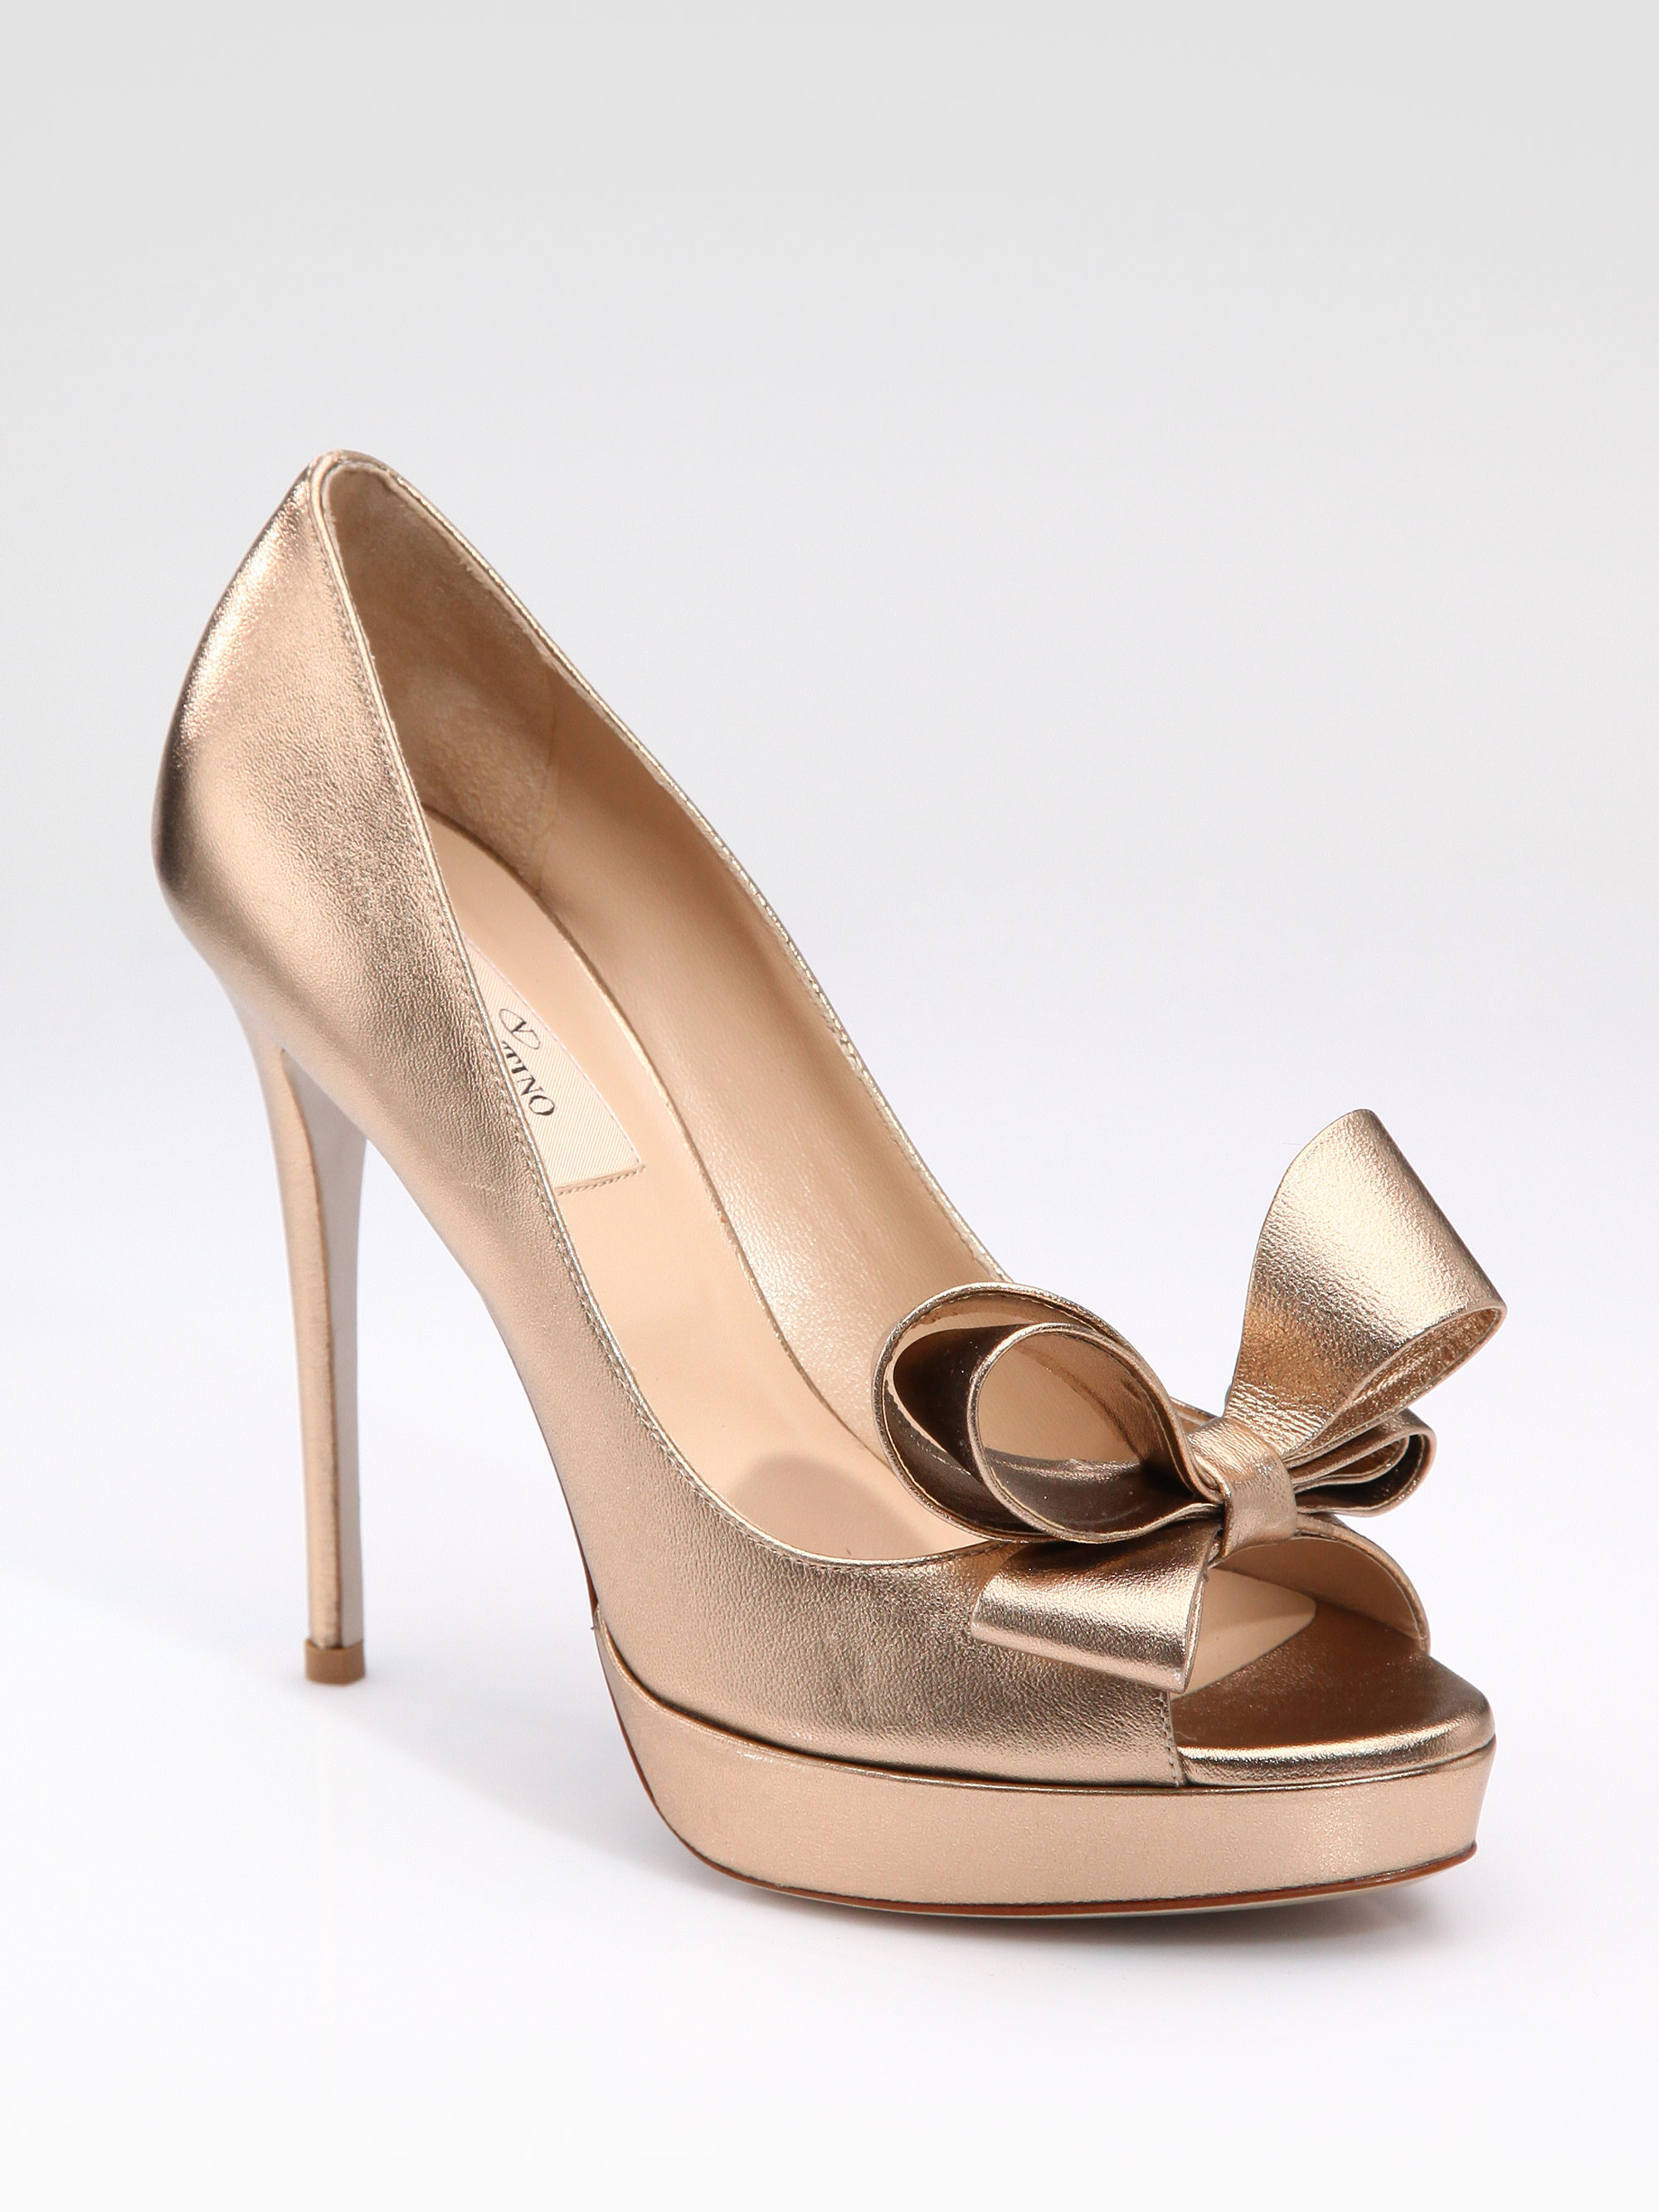 Valentino Detachable Bow PVC Pump | Priyanka Chopra's ...